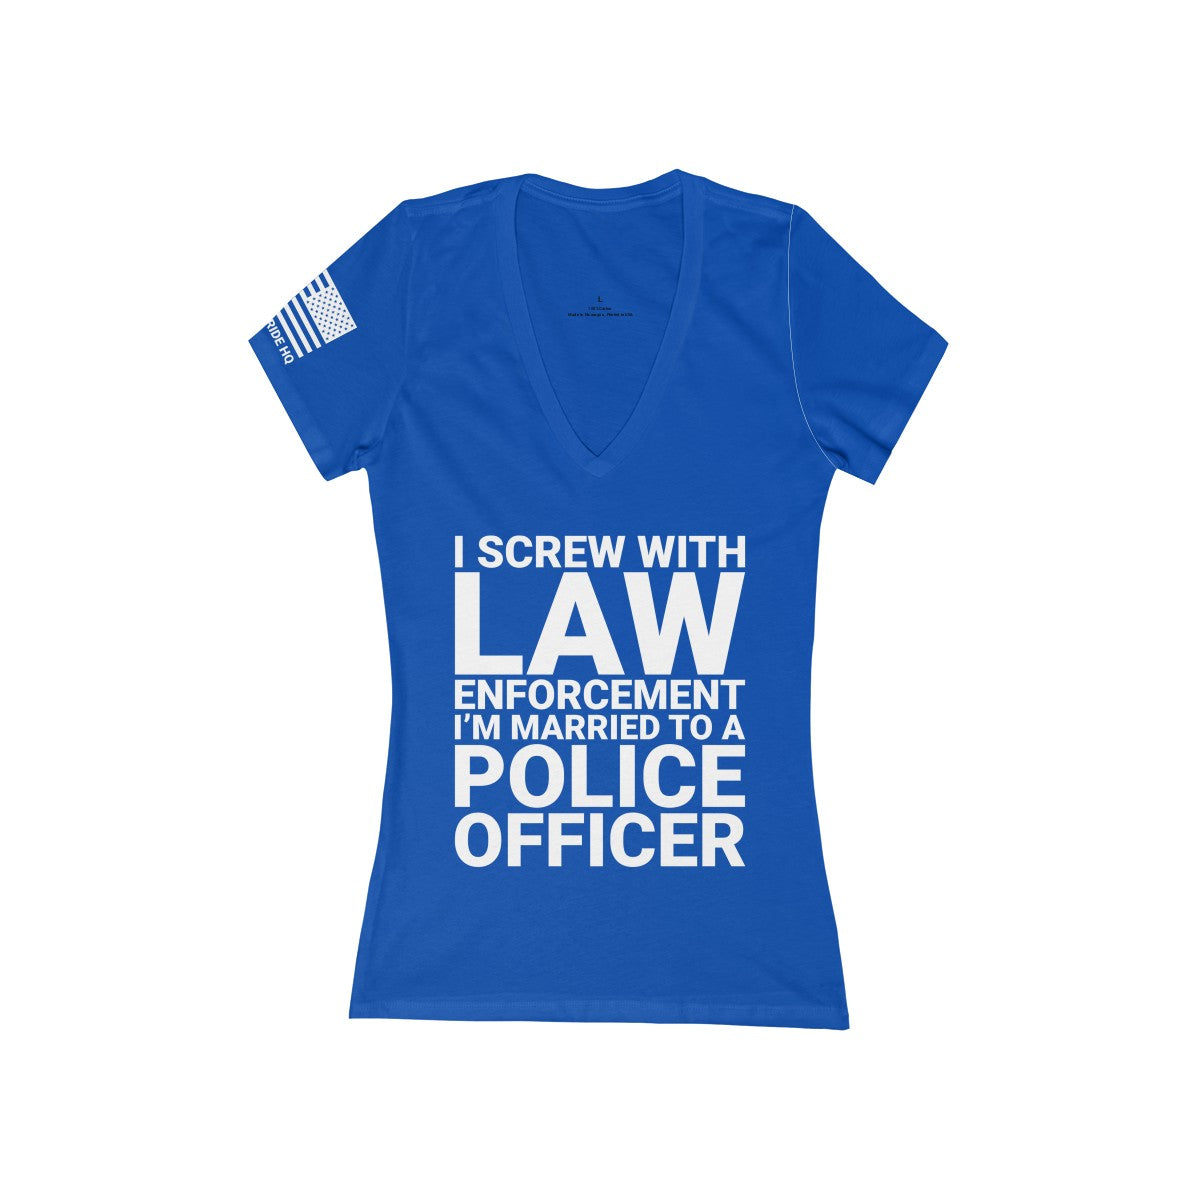 I Screw with Law Enforcement - I'm Married to a Police Officer Women's V-Neck Tee